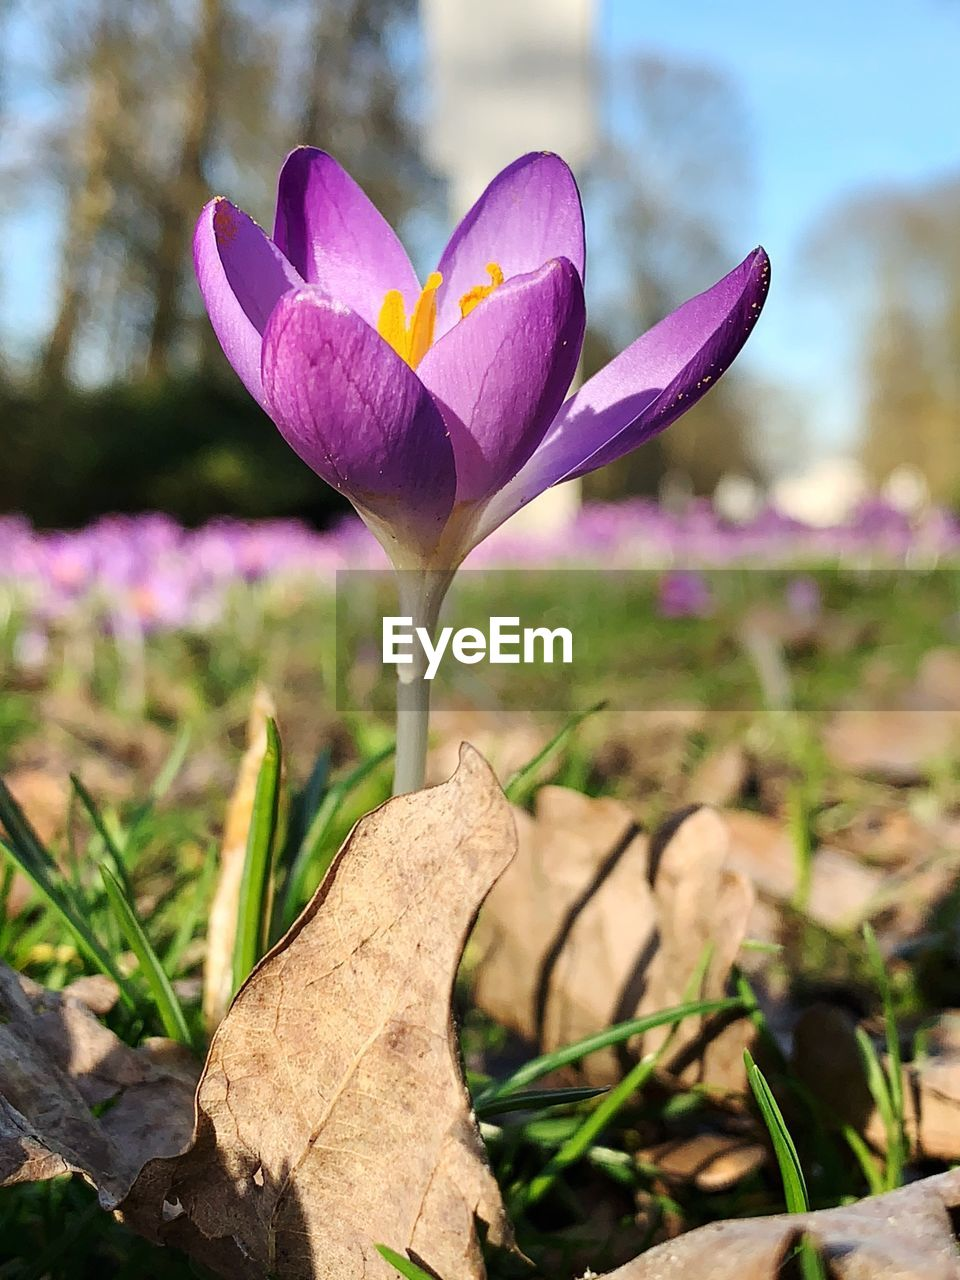 plant, flowering plant, flower, vulnerability, fragility, freshness, beauty in nature, growth, close-up, petal, crocus, nature, flower head, inflorescence, iris, day, leaf, focus on foreground, plant part, no people, outdoors, purple